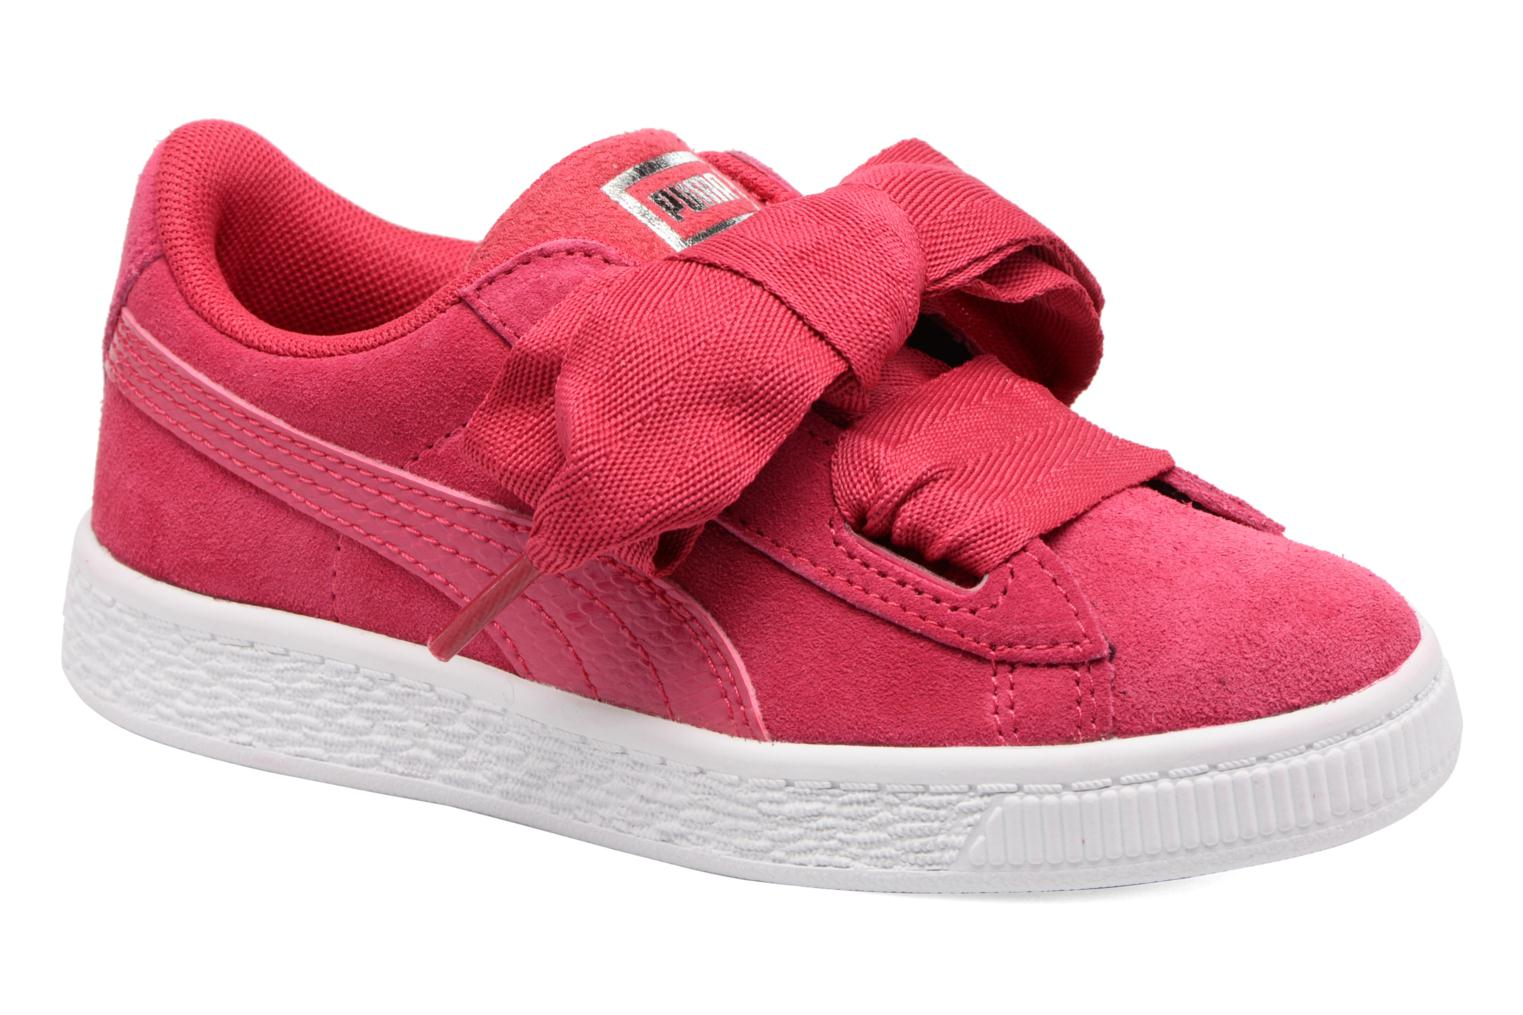 Baskets Puma Inf Basket Heart Glam/PS Basket Heart Glam Rose vue détail/paire